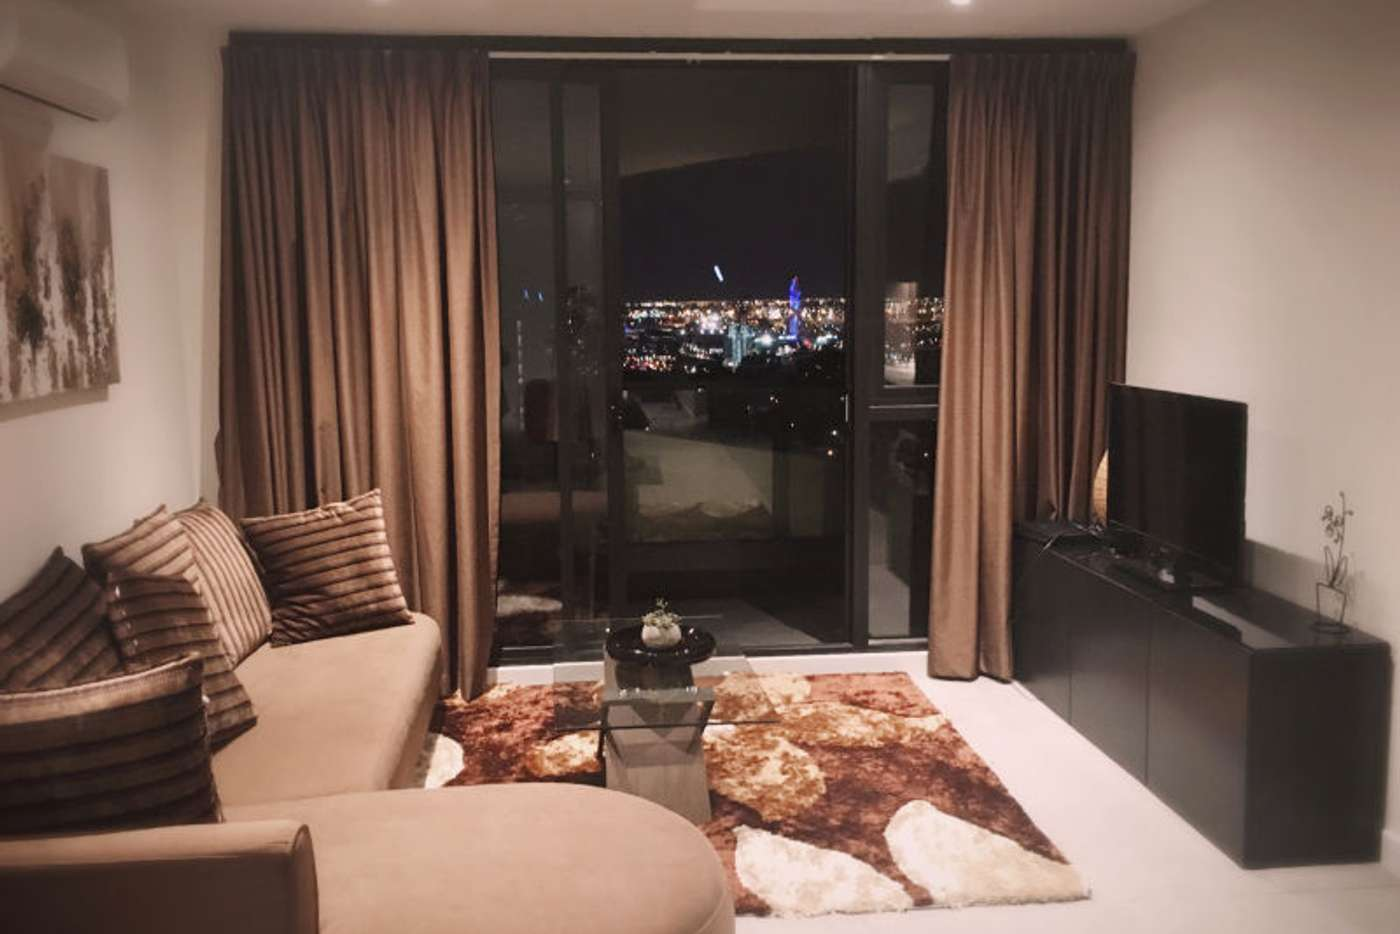 Main view of Homely apartment listing, 2214/155 FRANKLIN STREET, Melbourne VIC 3000